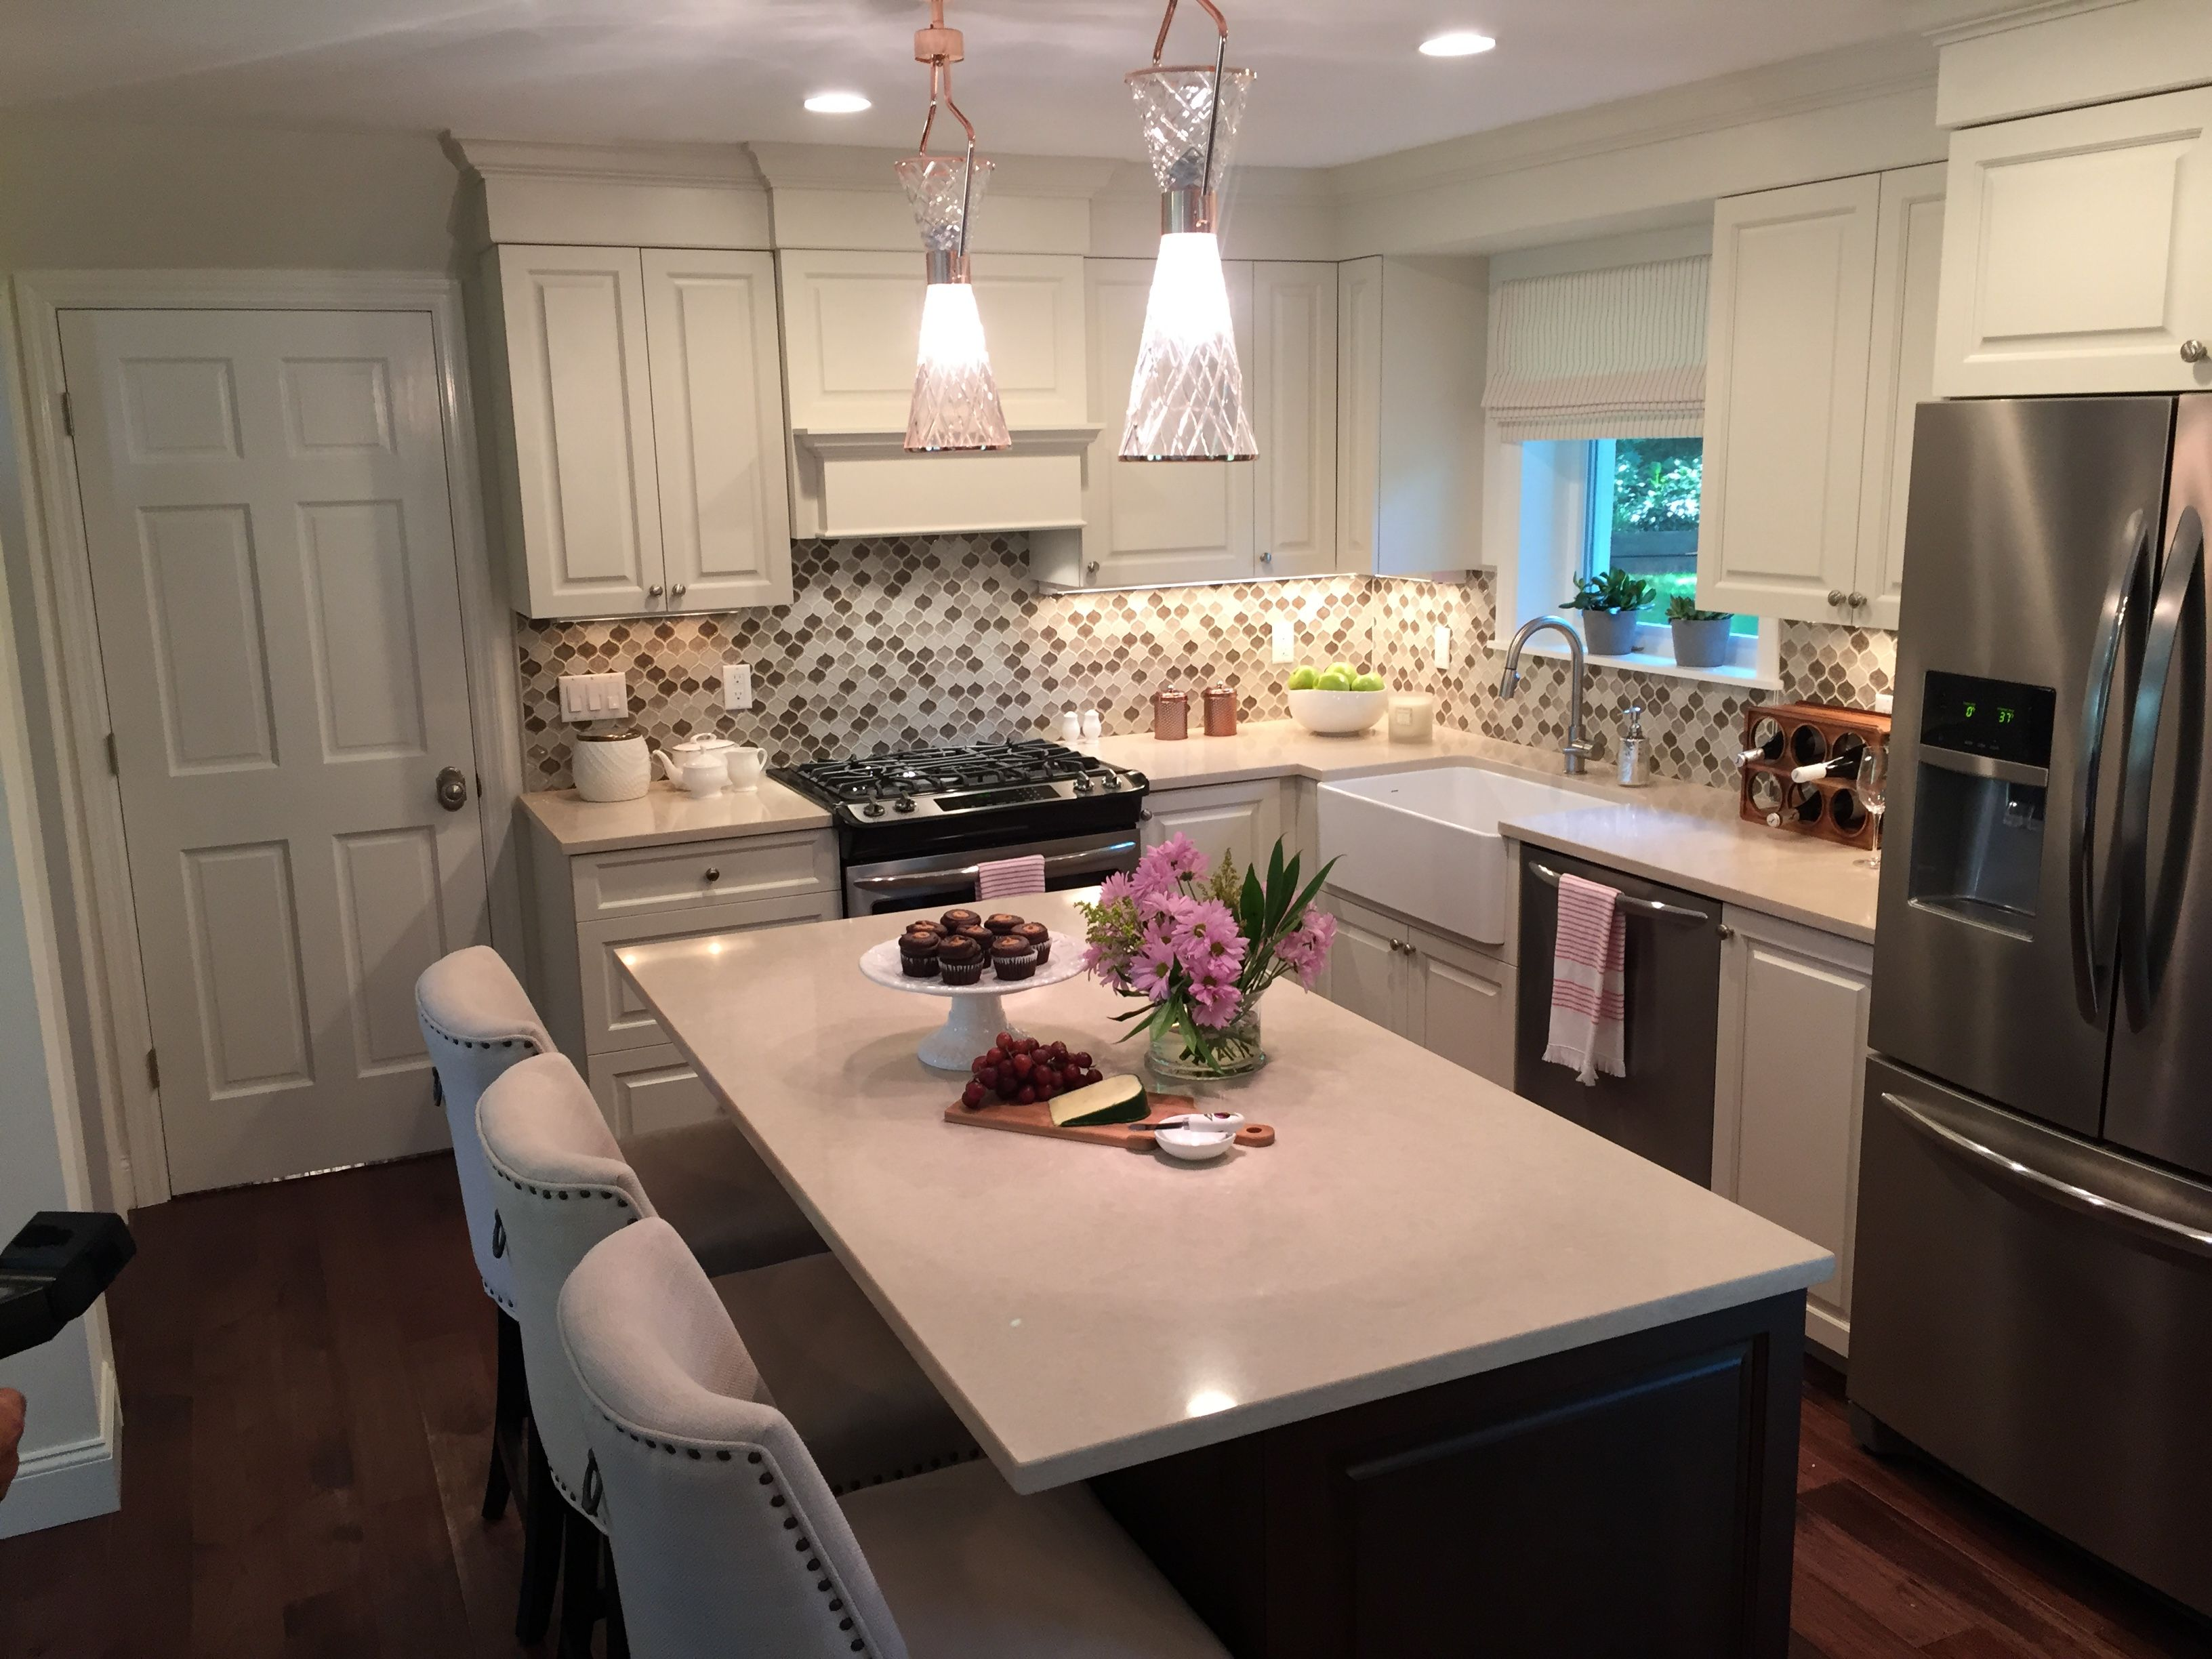 Property Brothers Kitchen with cabinet hardware by Emtek From HGTV ...